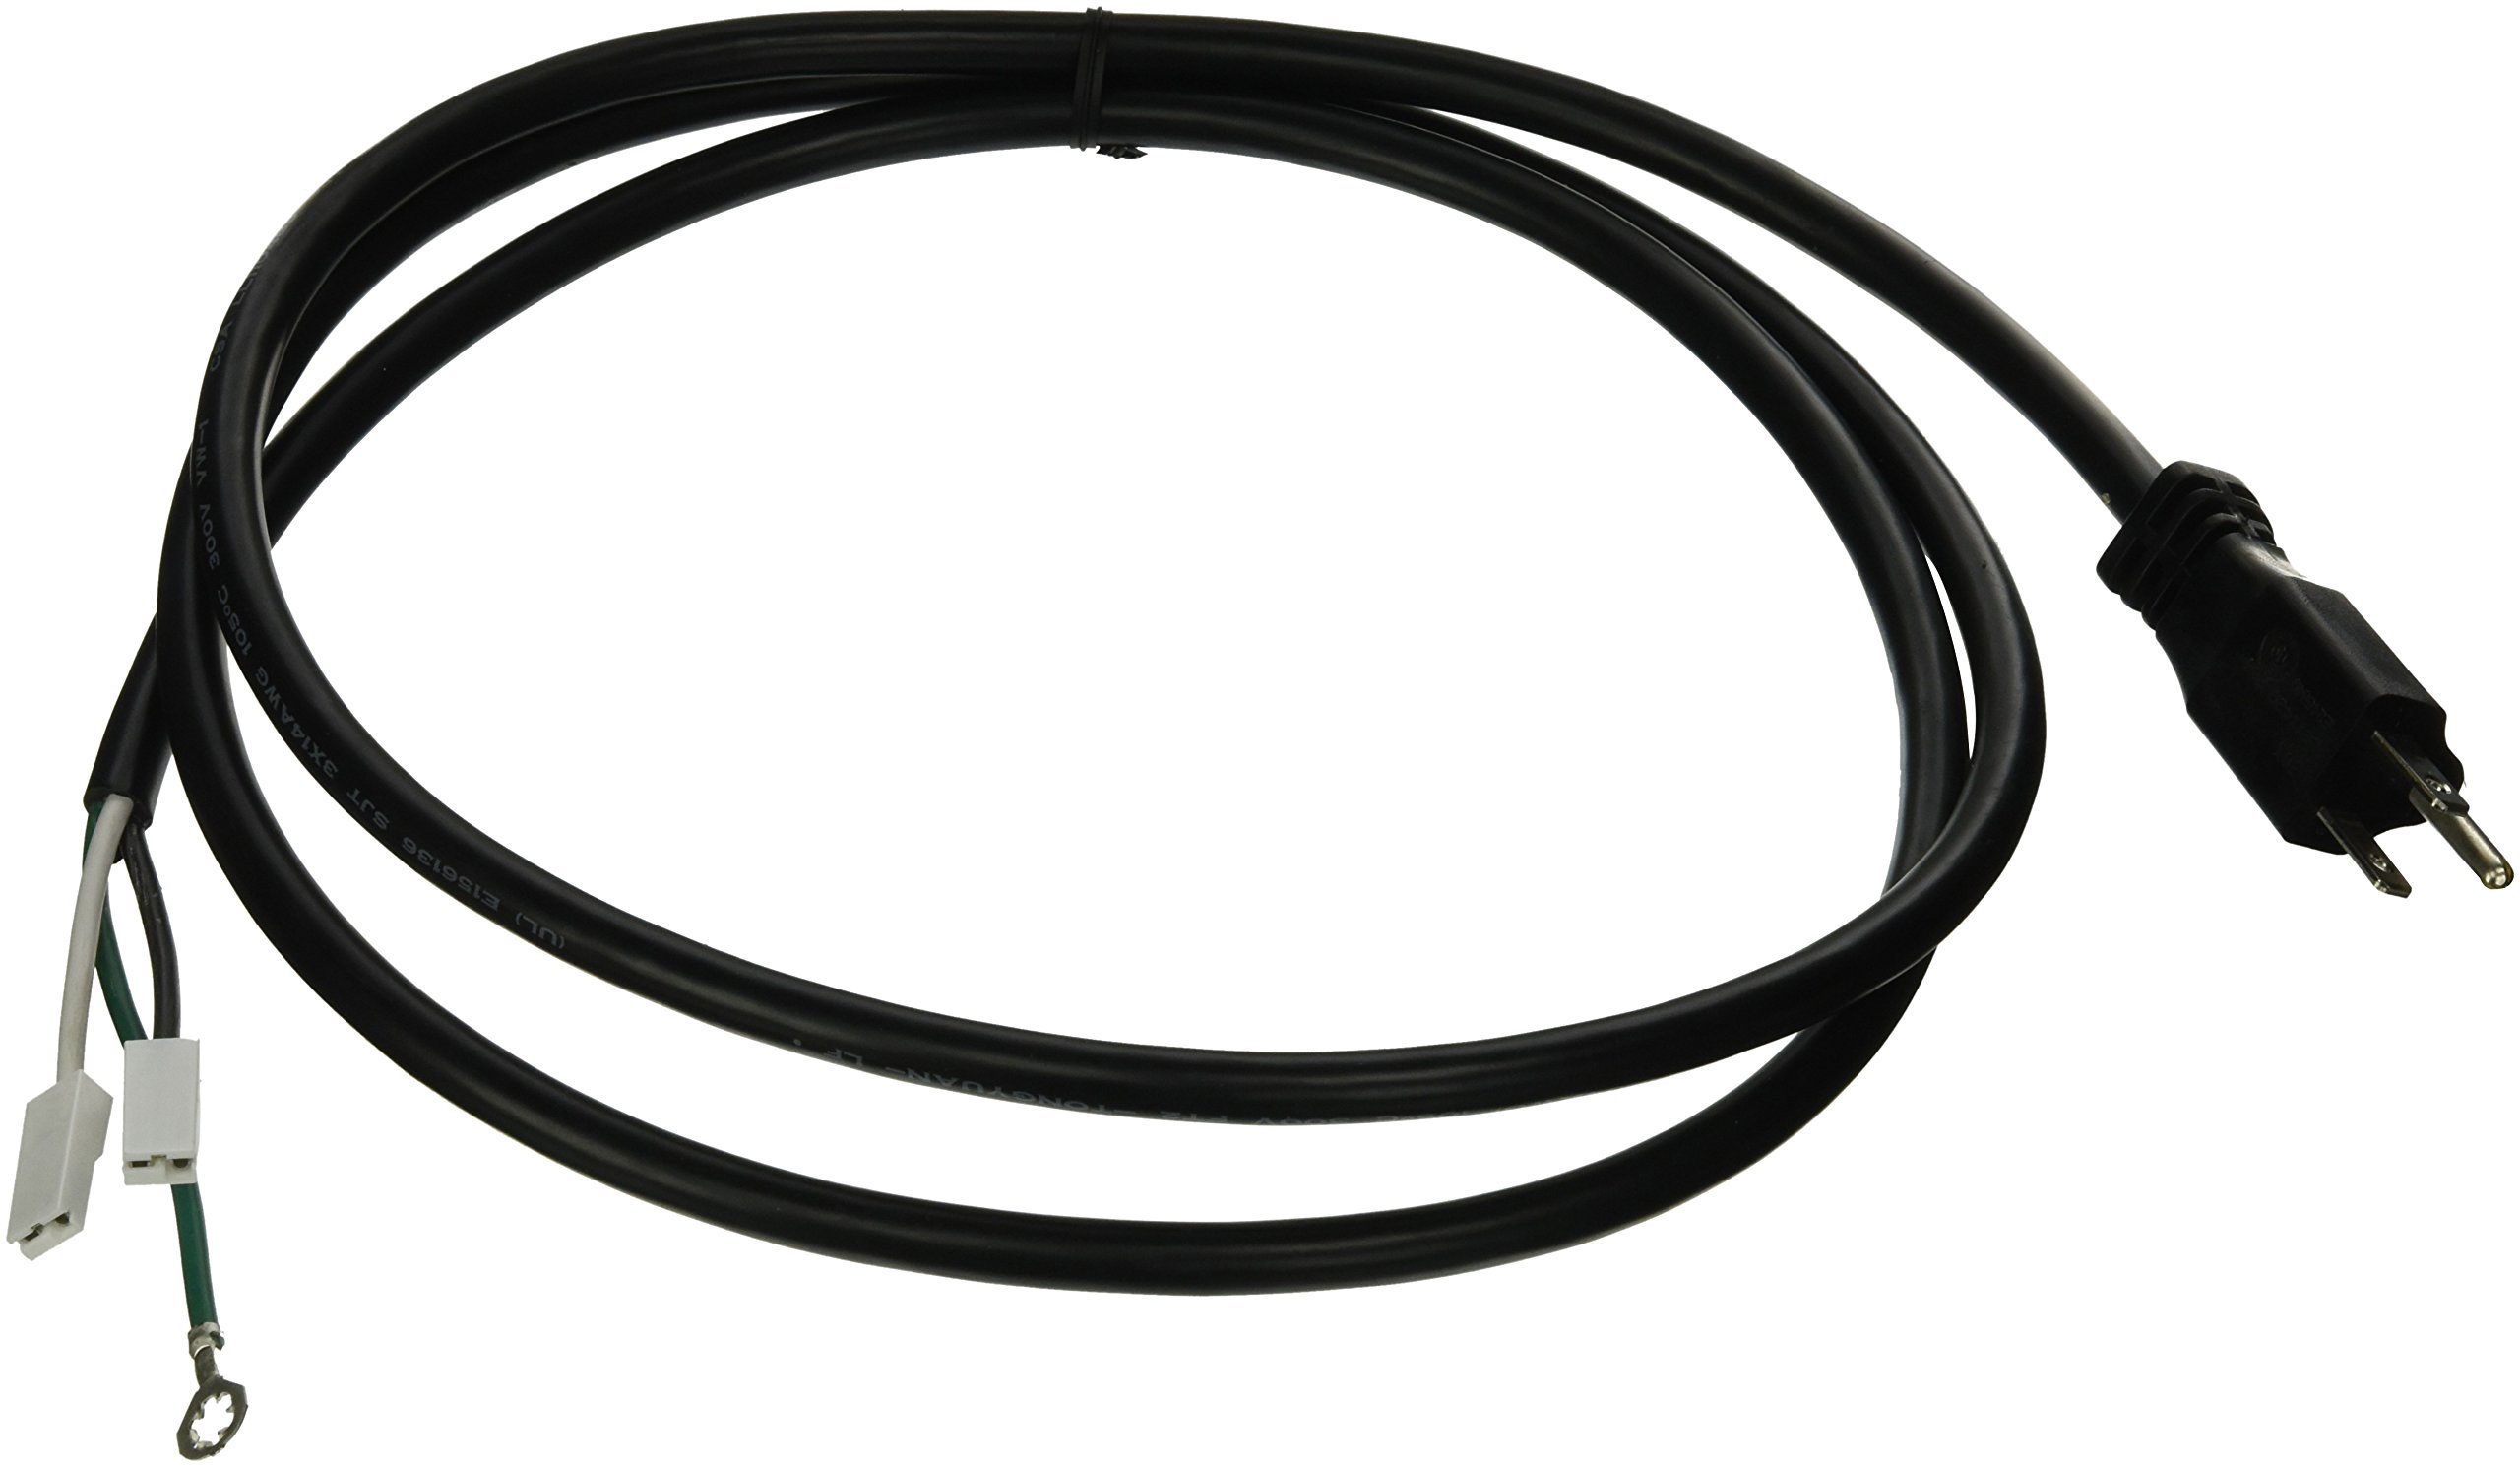 Whirlpool Part Number W10205499: CORD. POWER